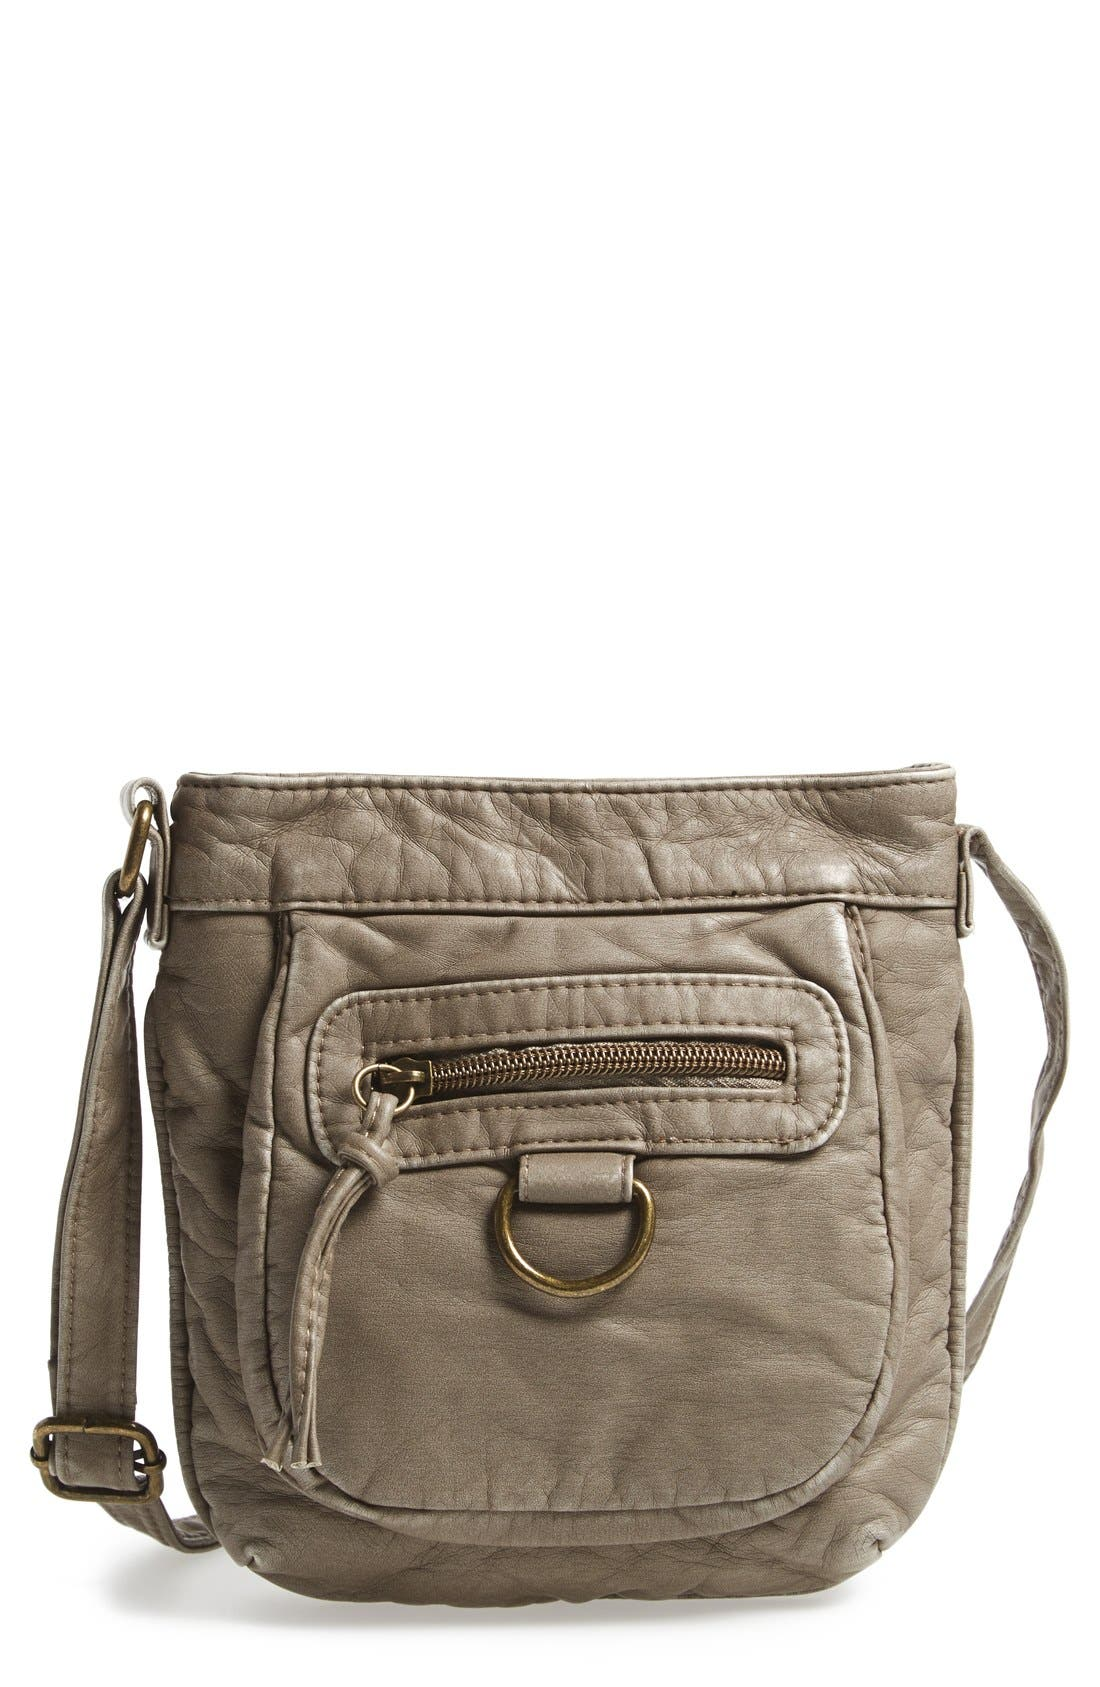 Alternate Image 1 Selected - T-Shirt & Jeans 'Washed' Small Crossbody Bag